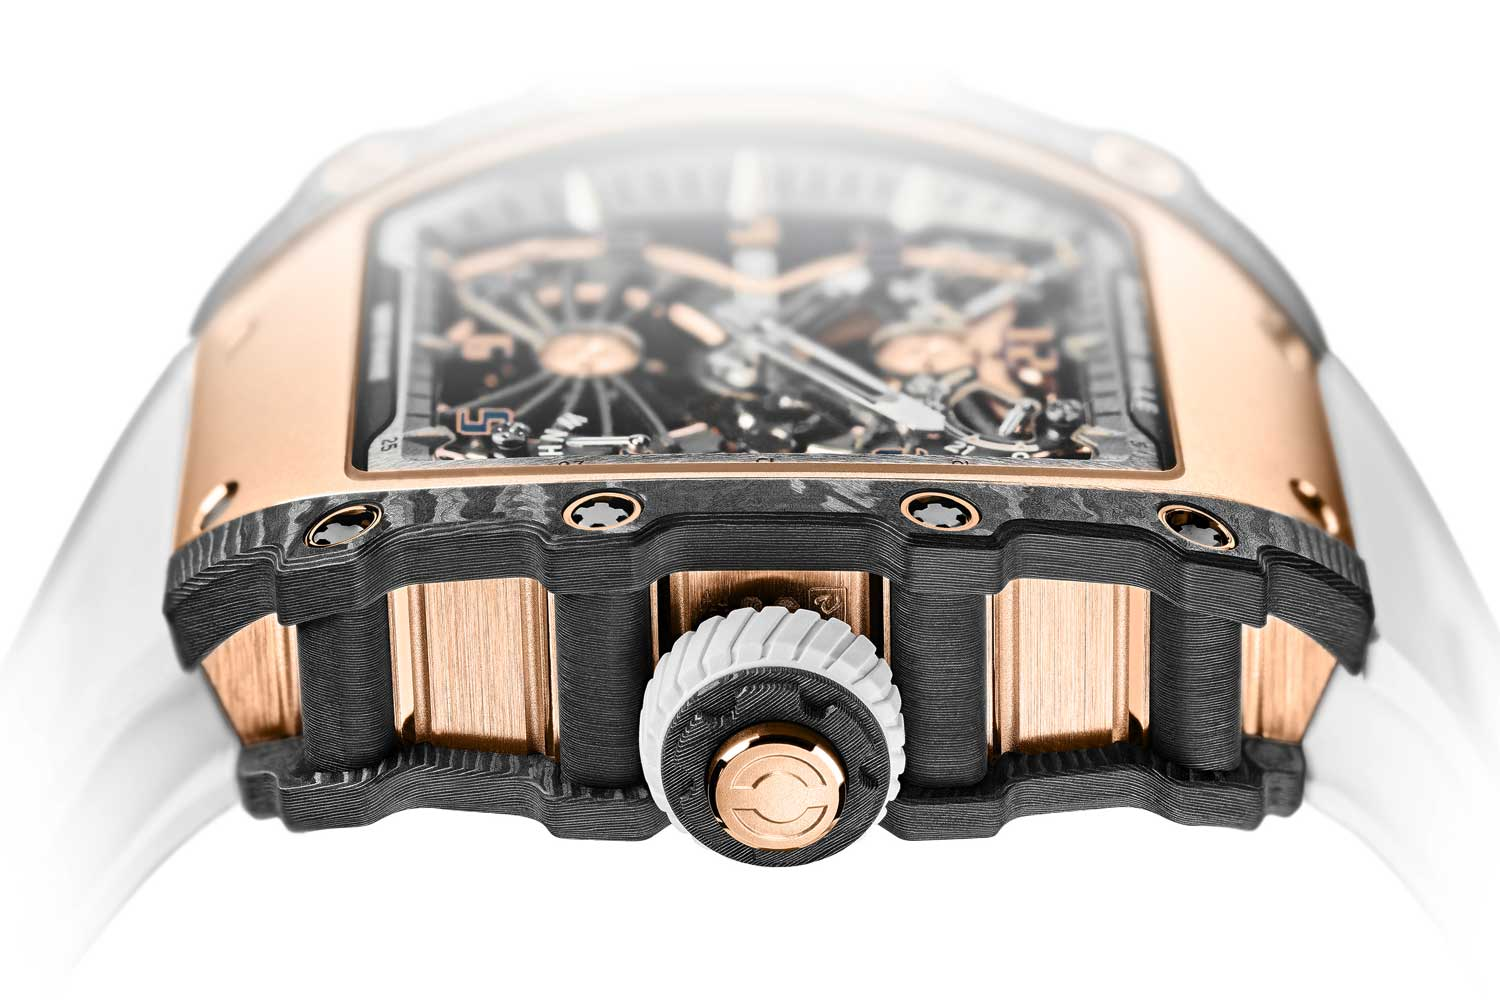 A push-button located at the centre of the crown makes it possible to select the winding, neutral and hand-setting functions with a simple push.